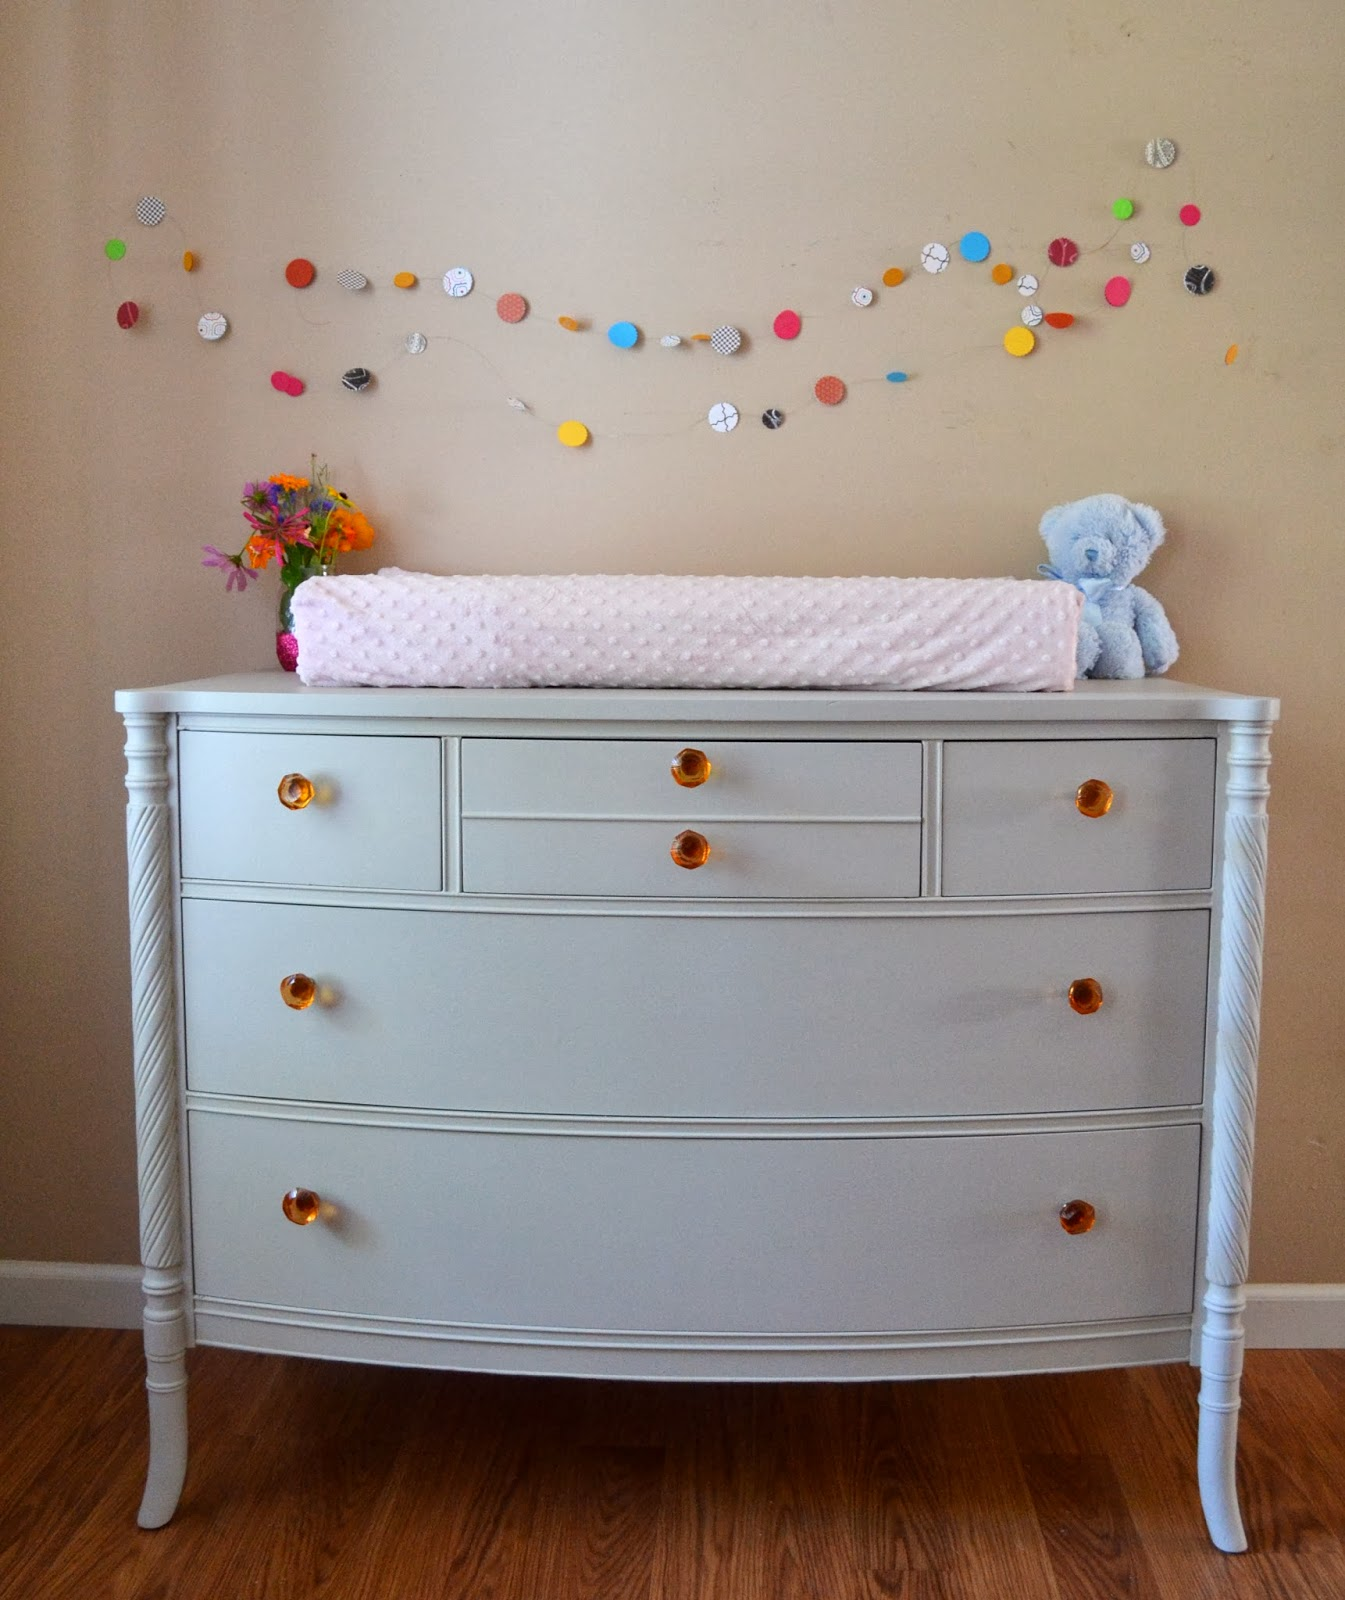 Baby Wickeltisch Helen Nichole Designs: Baby Changing Table